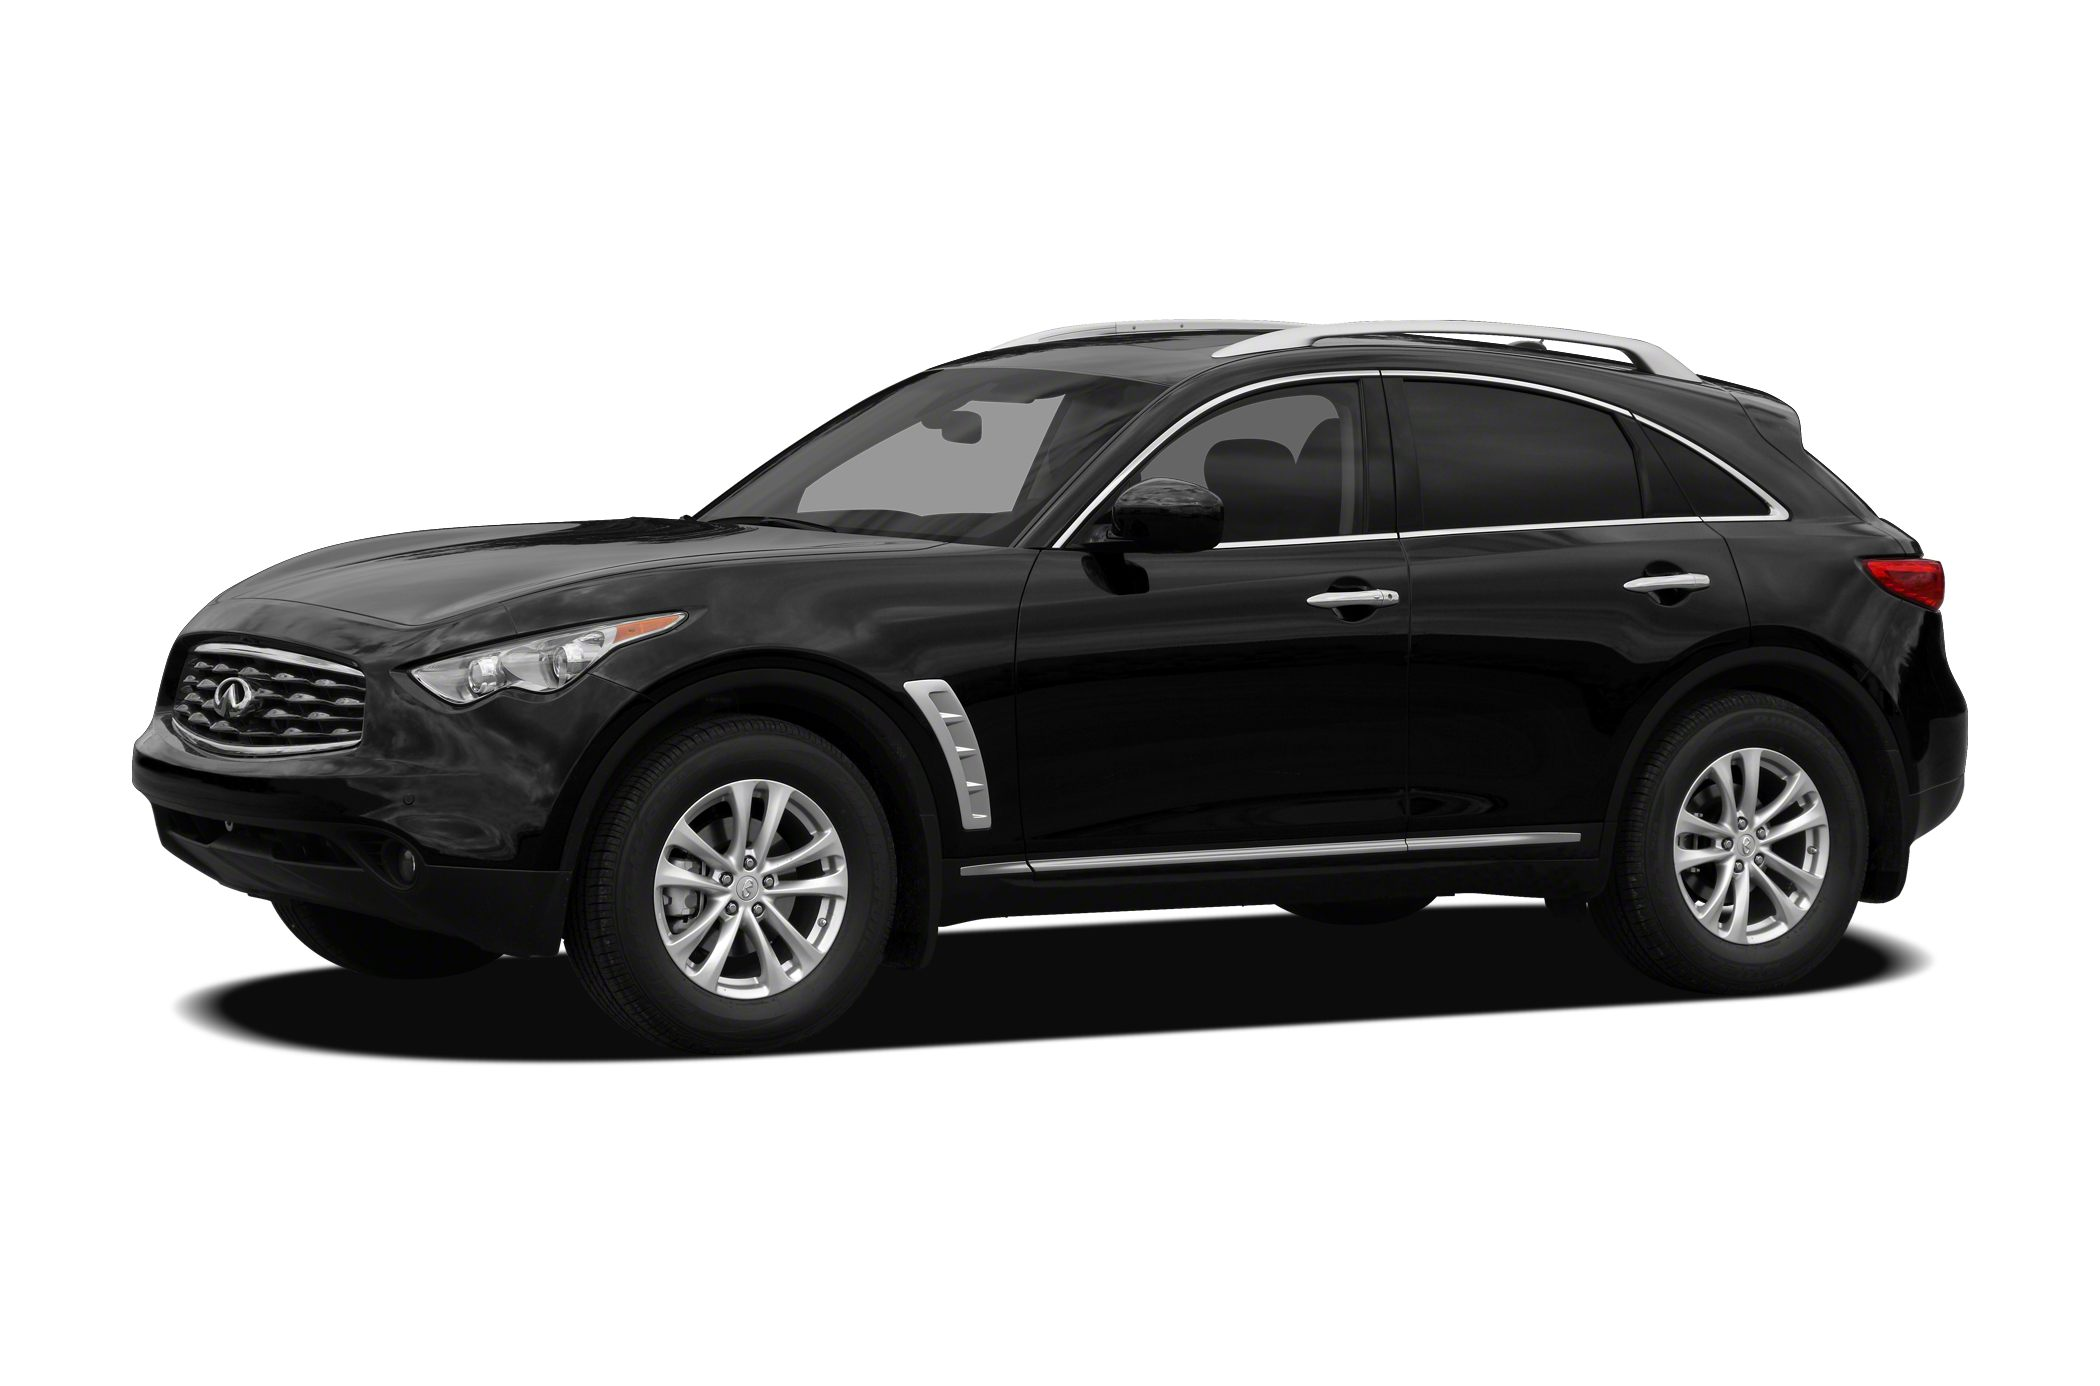 2011 Infiniti FX35